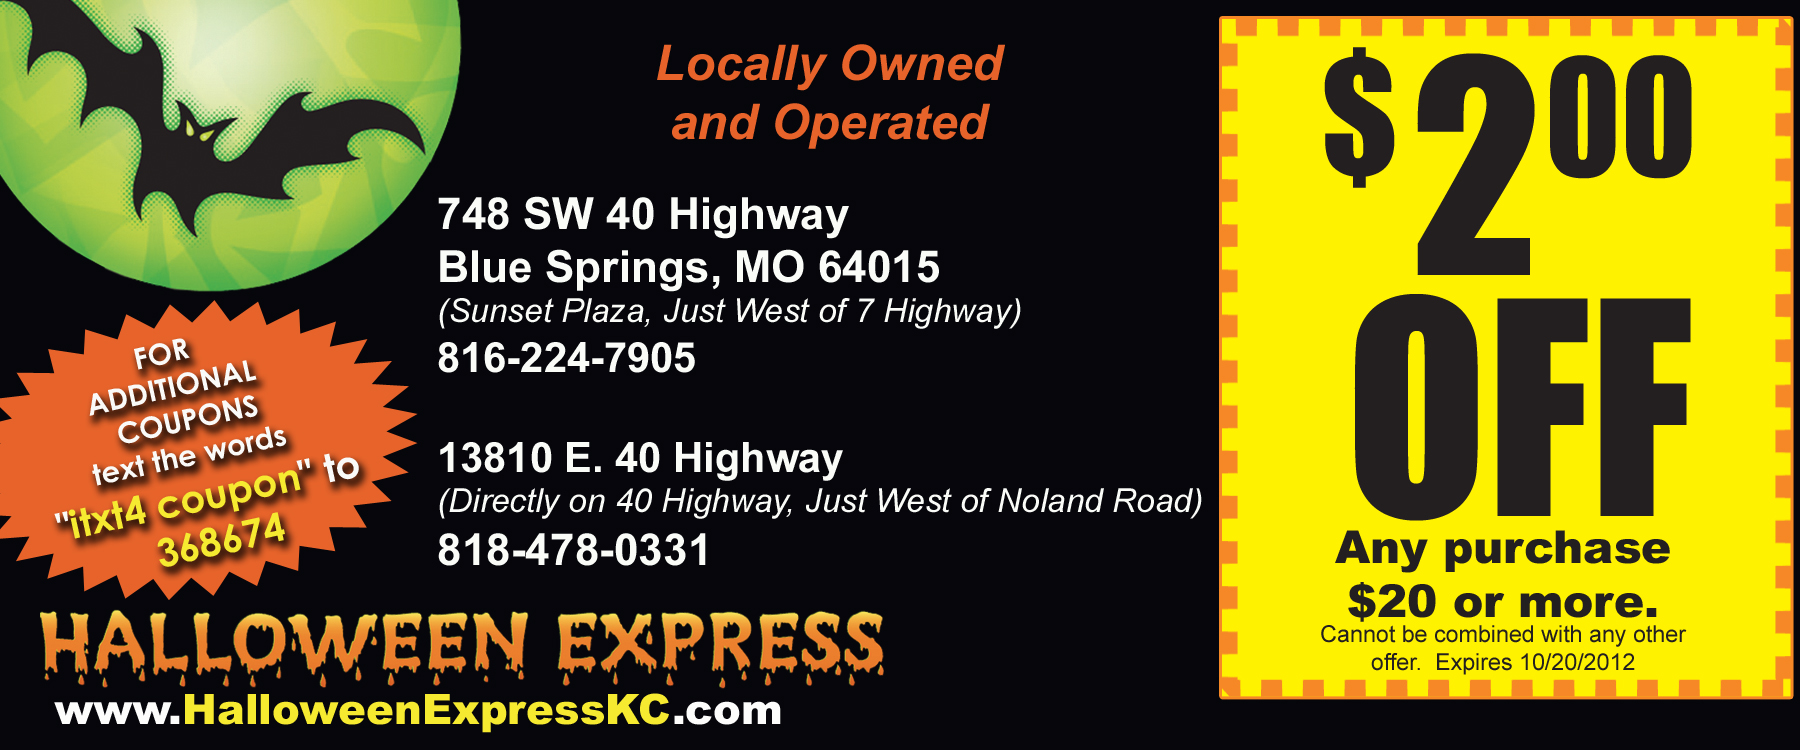 Online Halloween Express Coupons